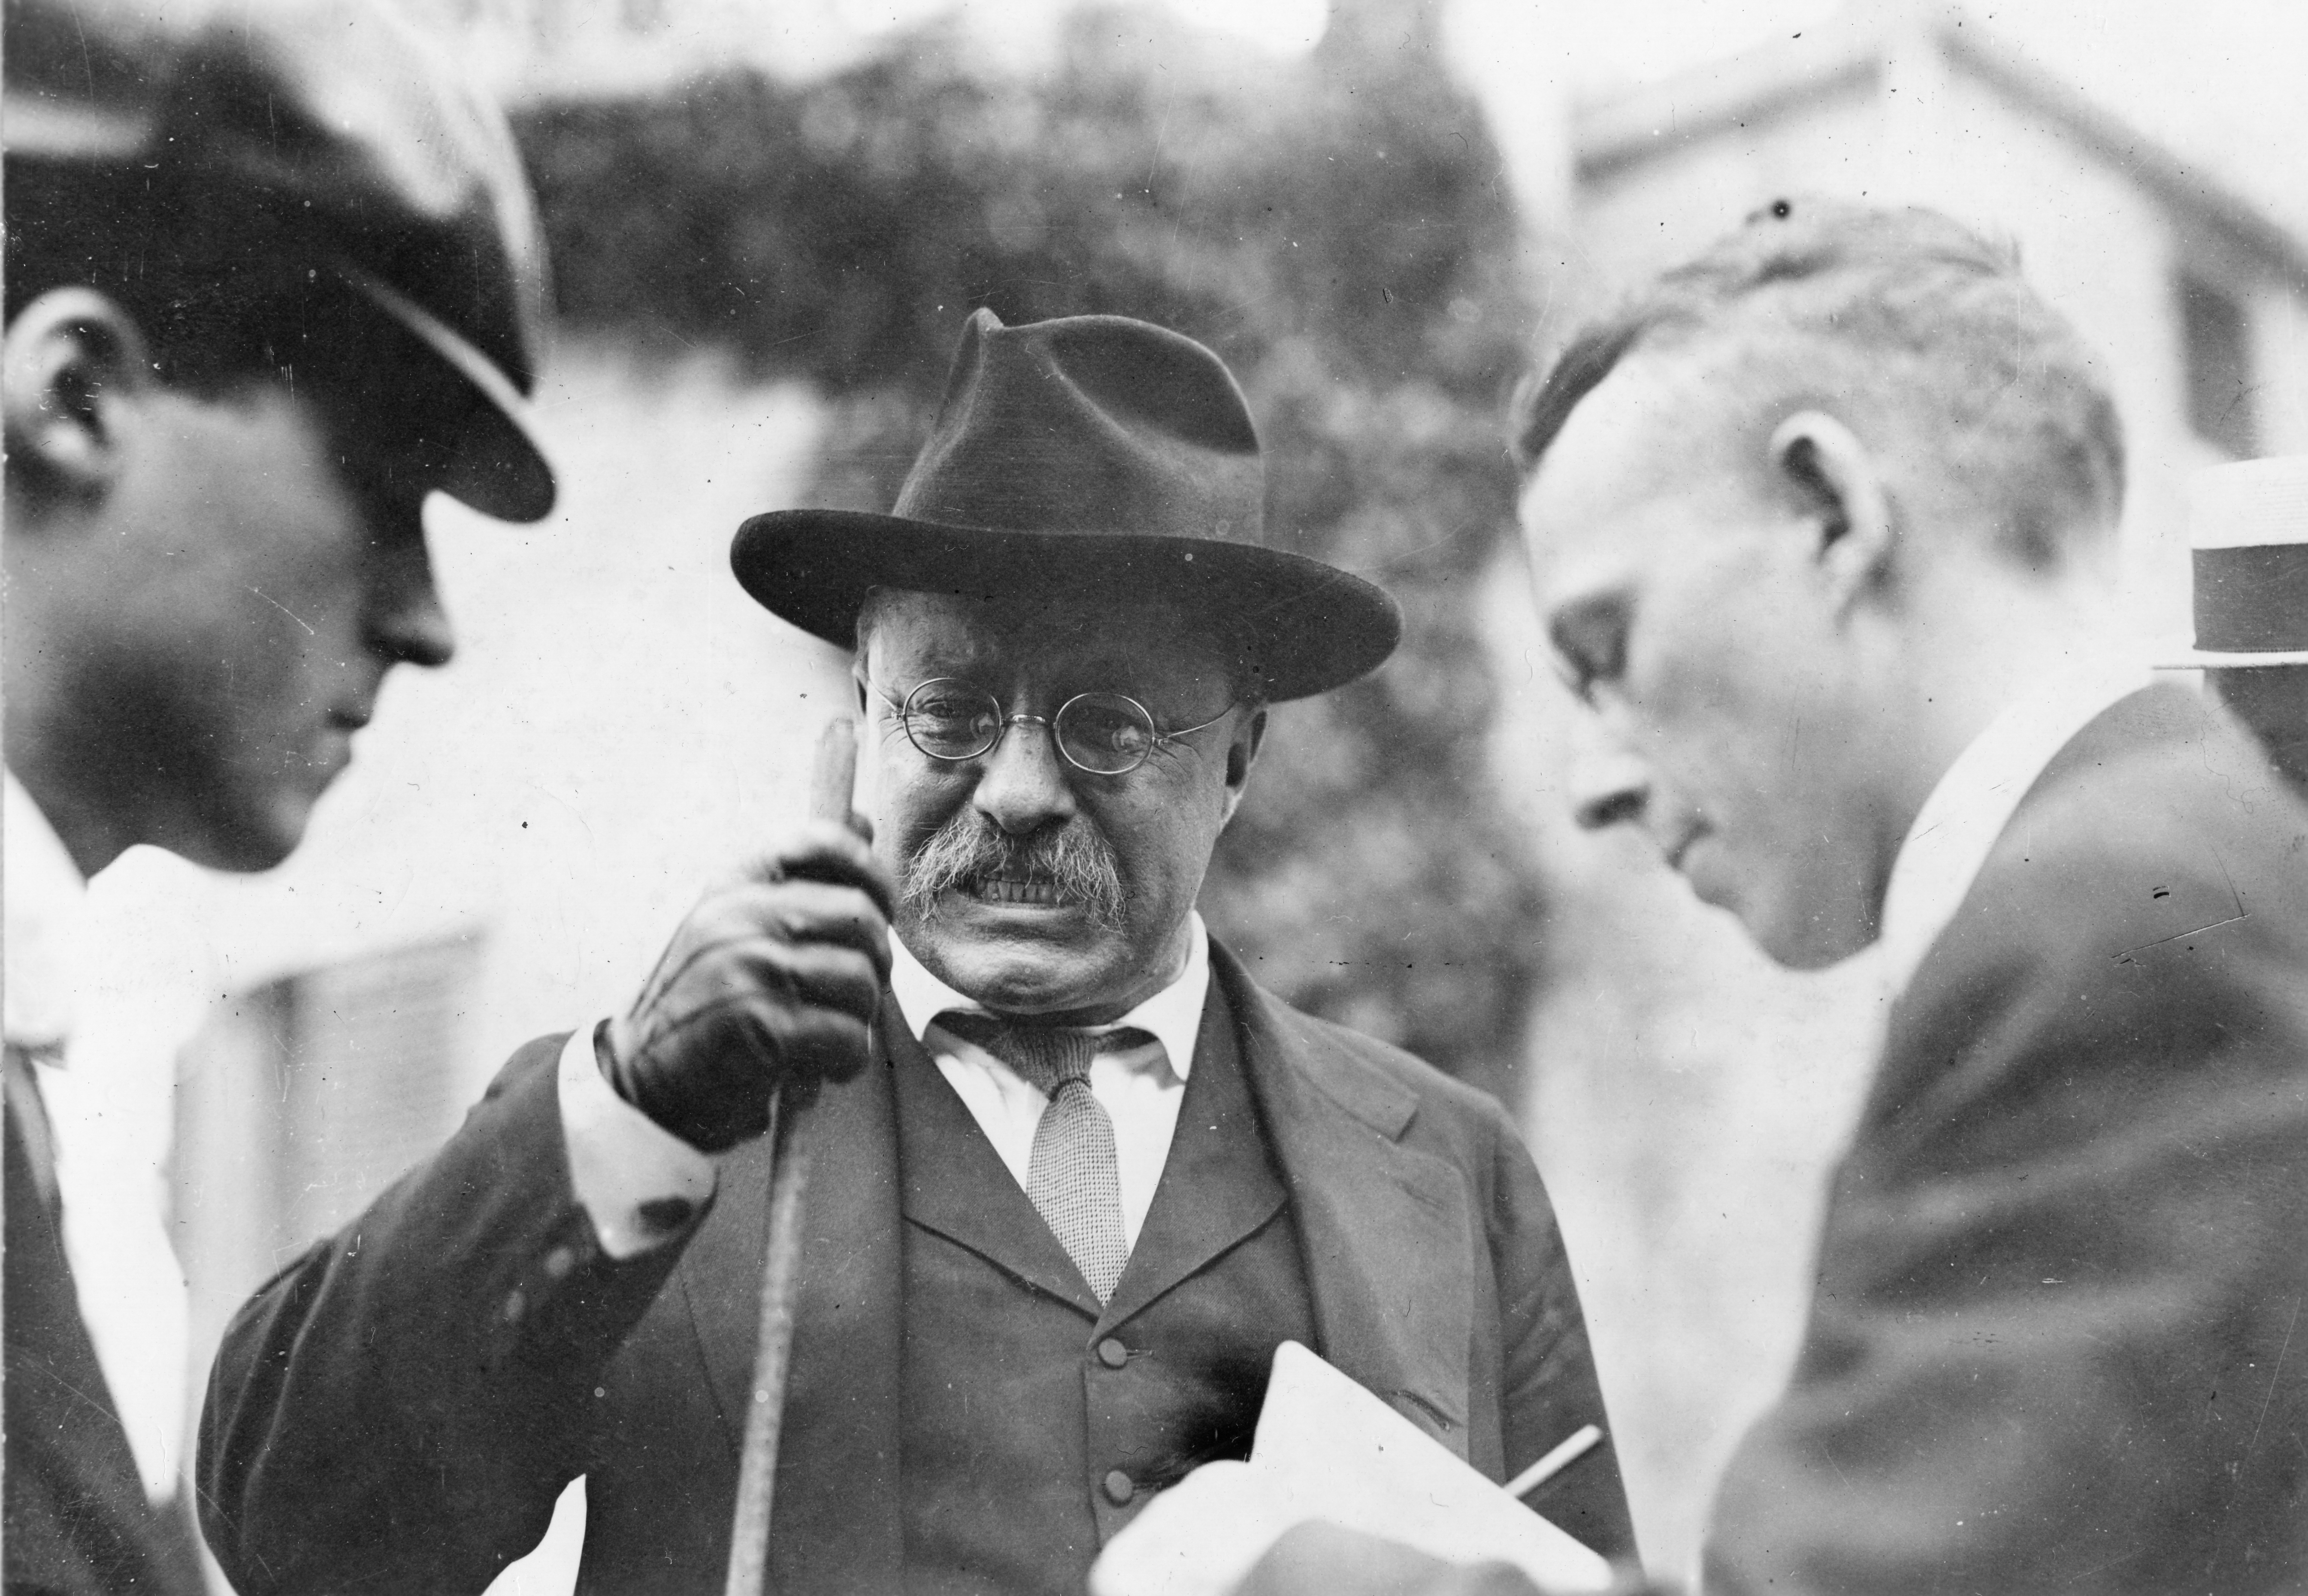 theodore roosevelt's the threat of japan James bradley author for example edmund morris' in his roosevelt biography theodore rex describes its theodore roosevelt saying that the japanese are.